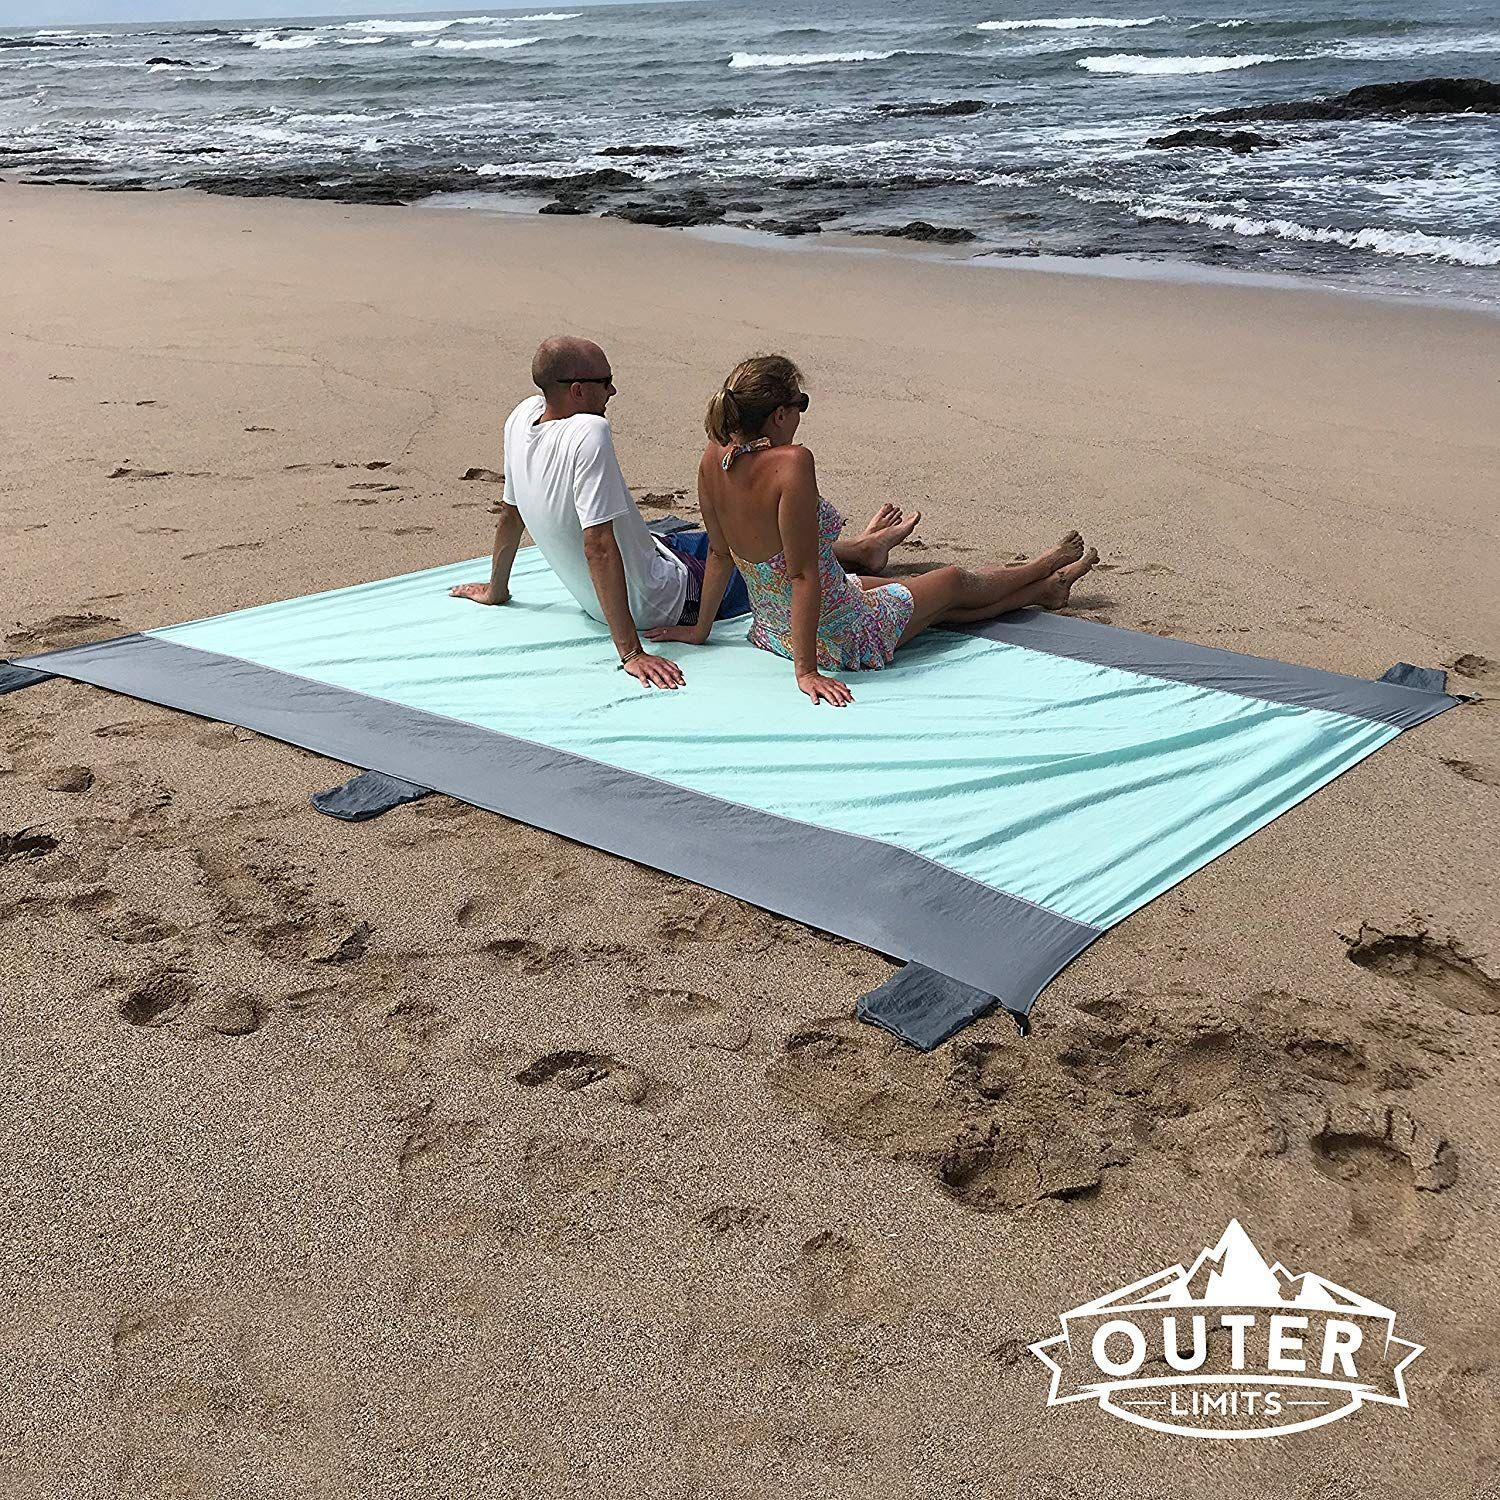 Sand Free Beach Blanket There Are Pockets Along The Edges You Can Fill With Sand To Weigh Down This Lightweight Camping Blanket Beach Blanket Travel Blankets